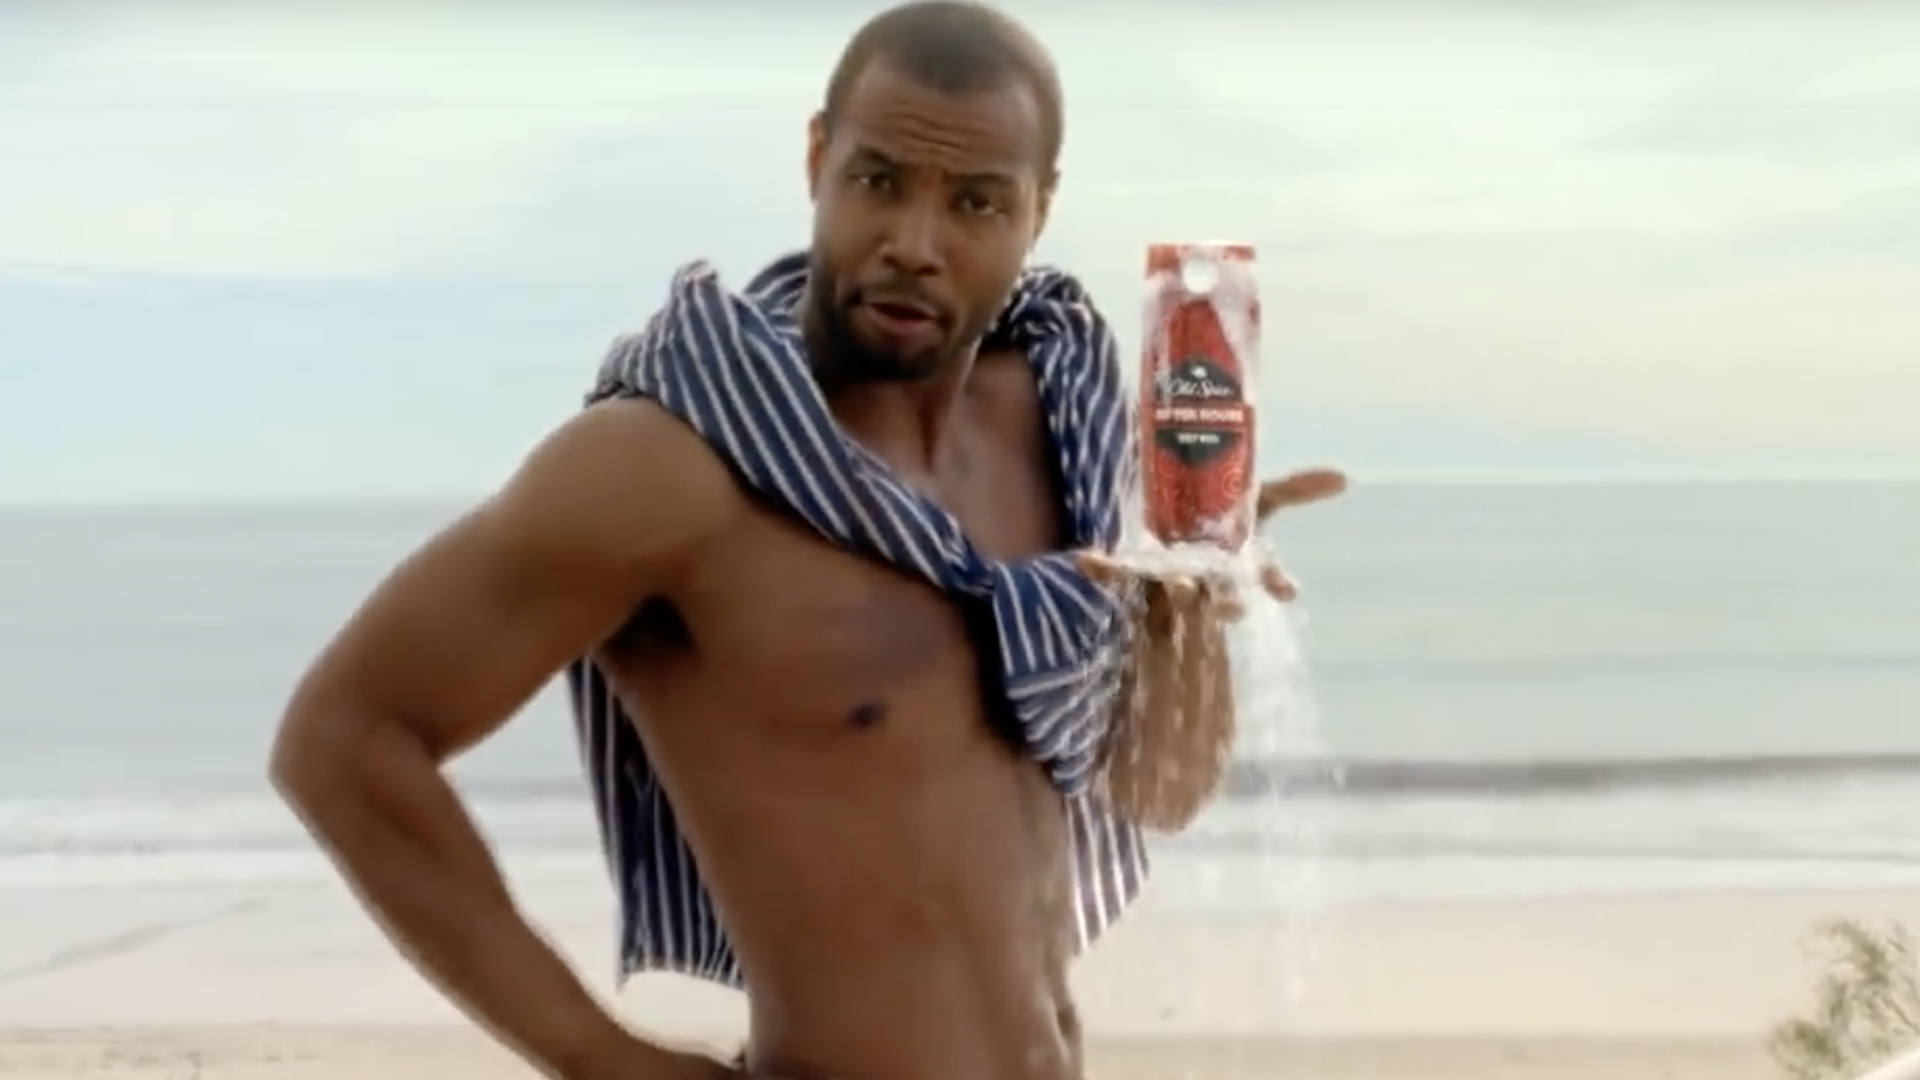 The 25 best Super Bowl commercials of all time, ranked